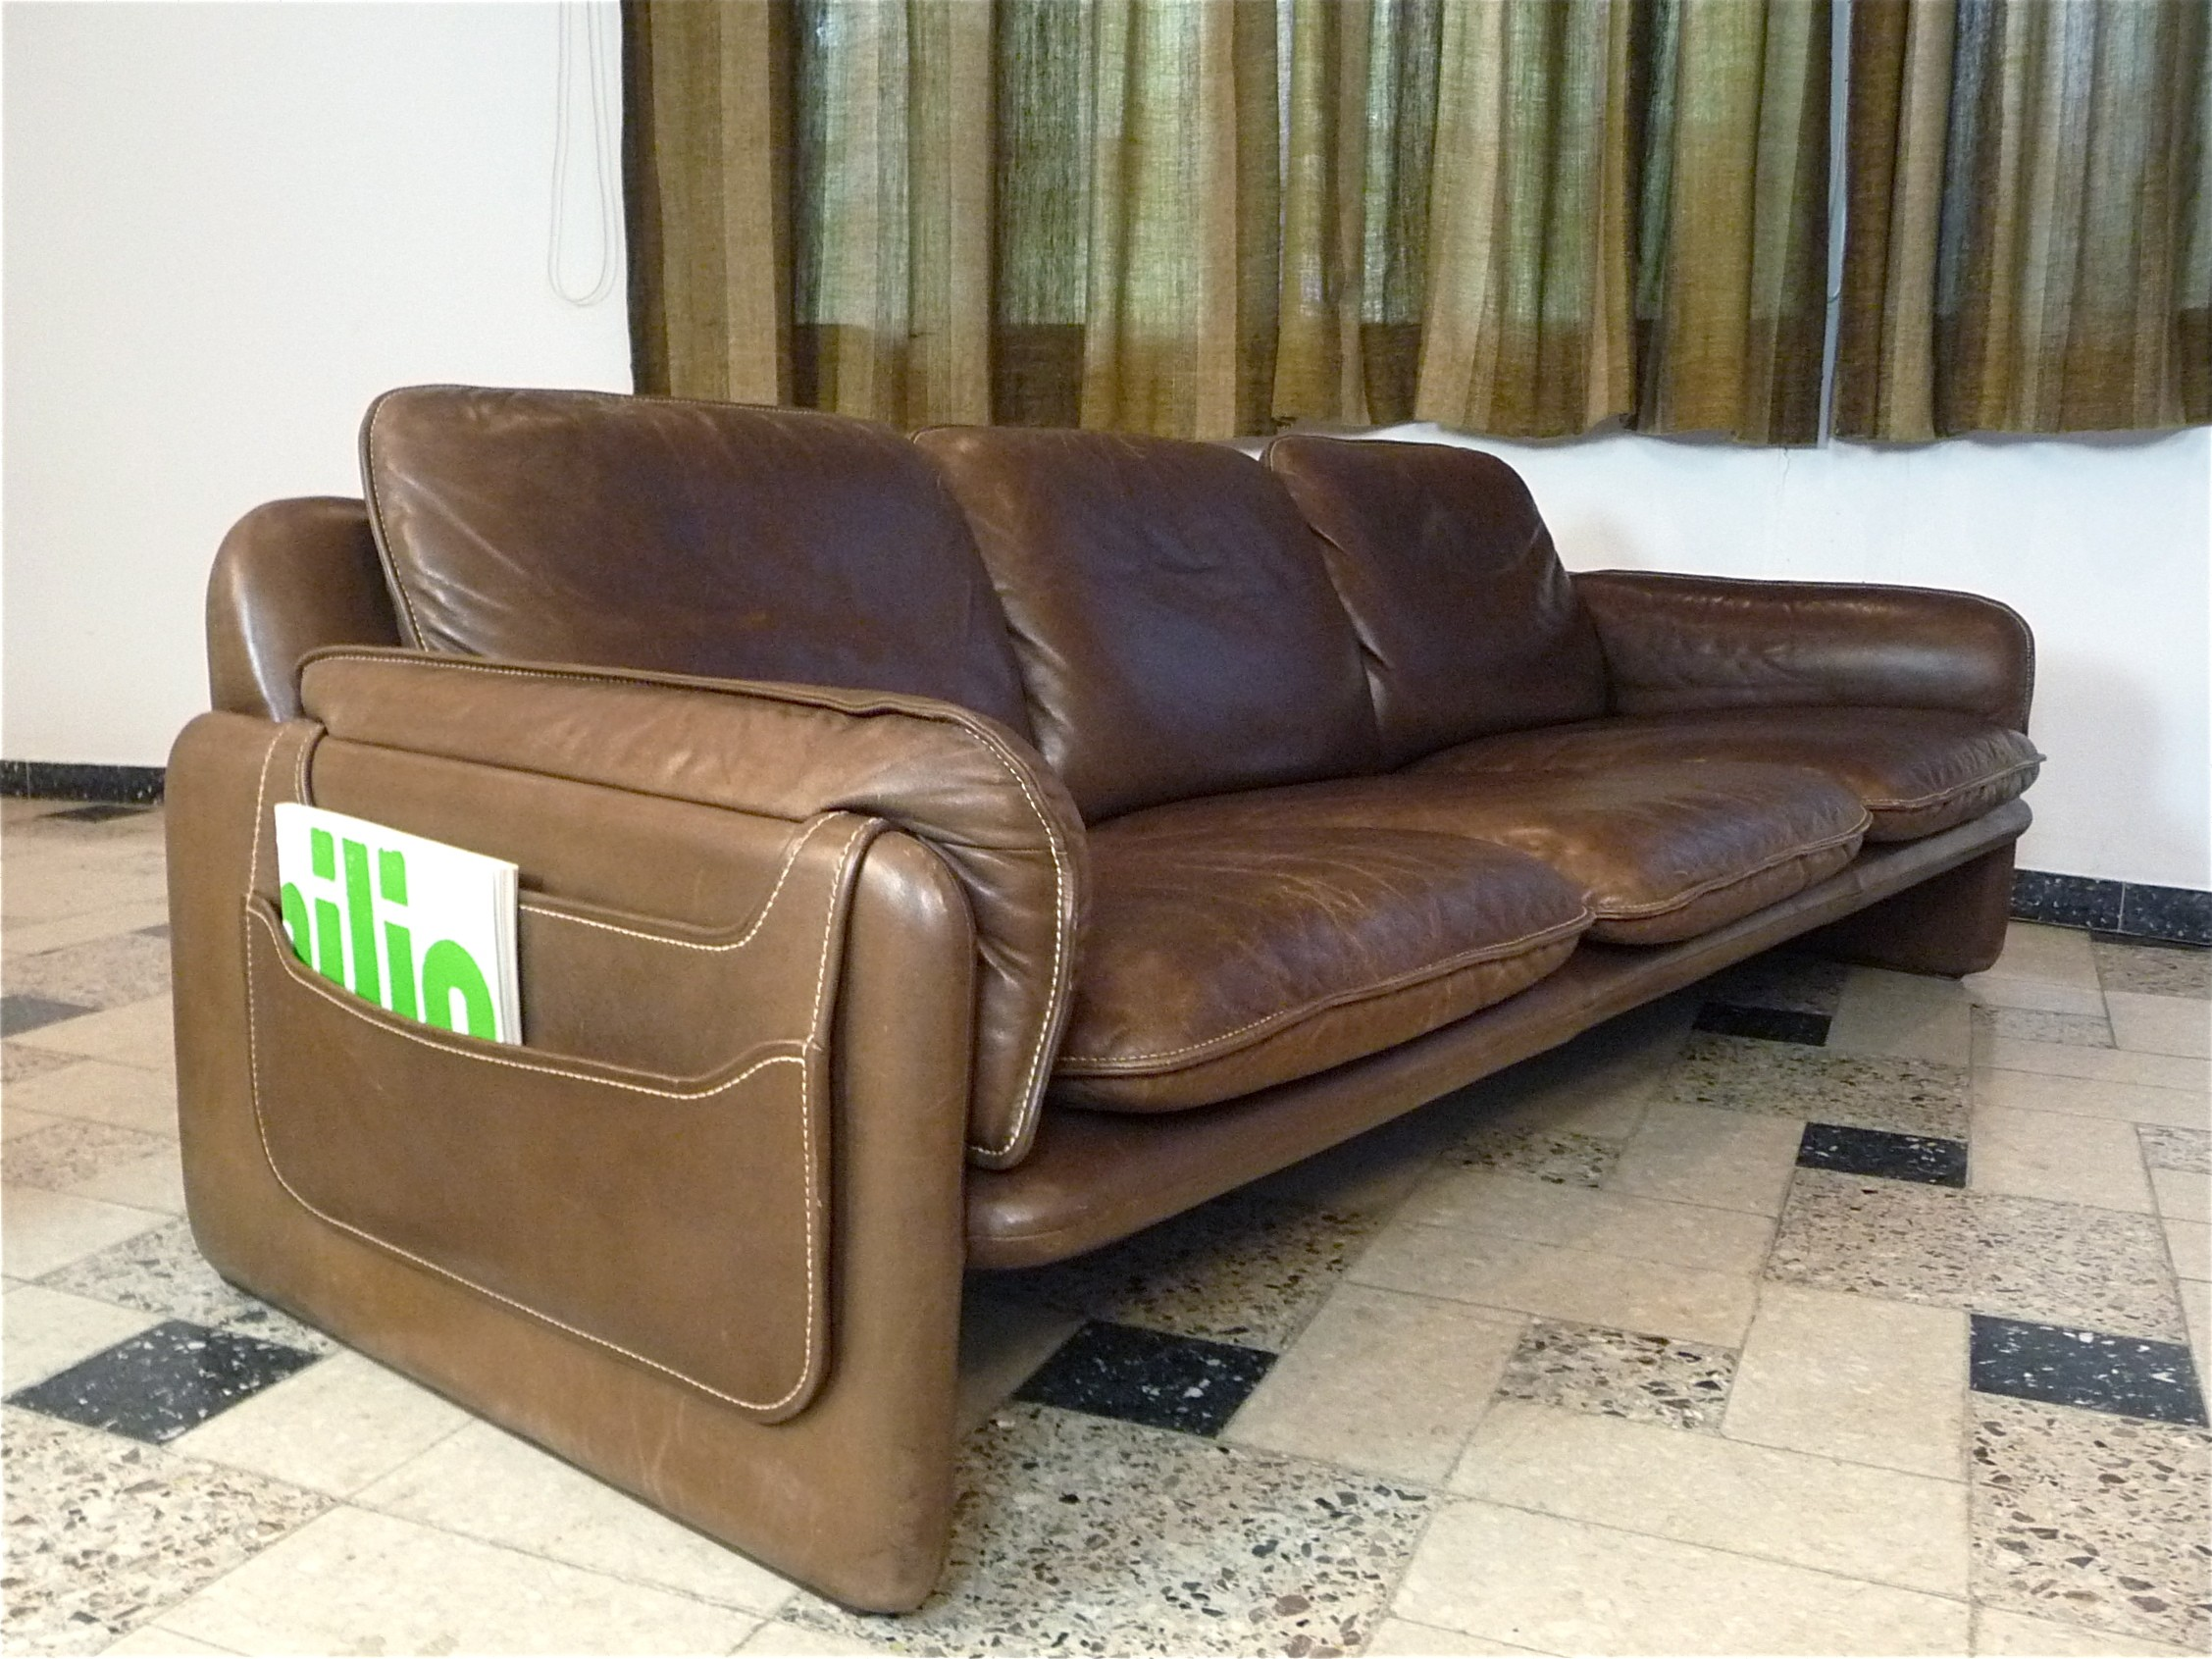 DS61 3 seater brown leather sofa produced by De Sede 1960s